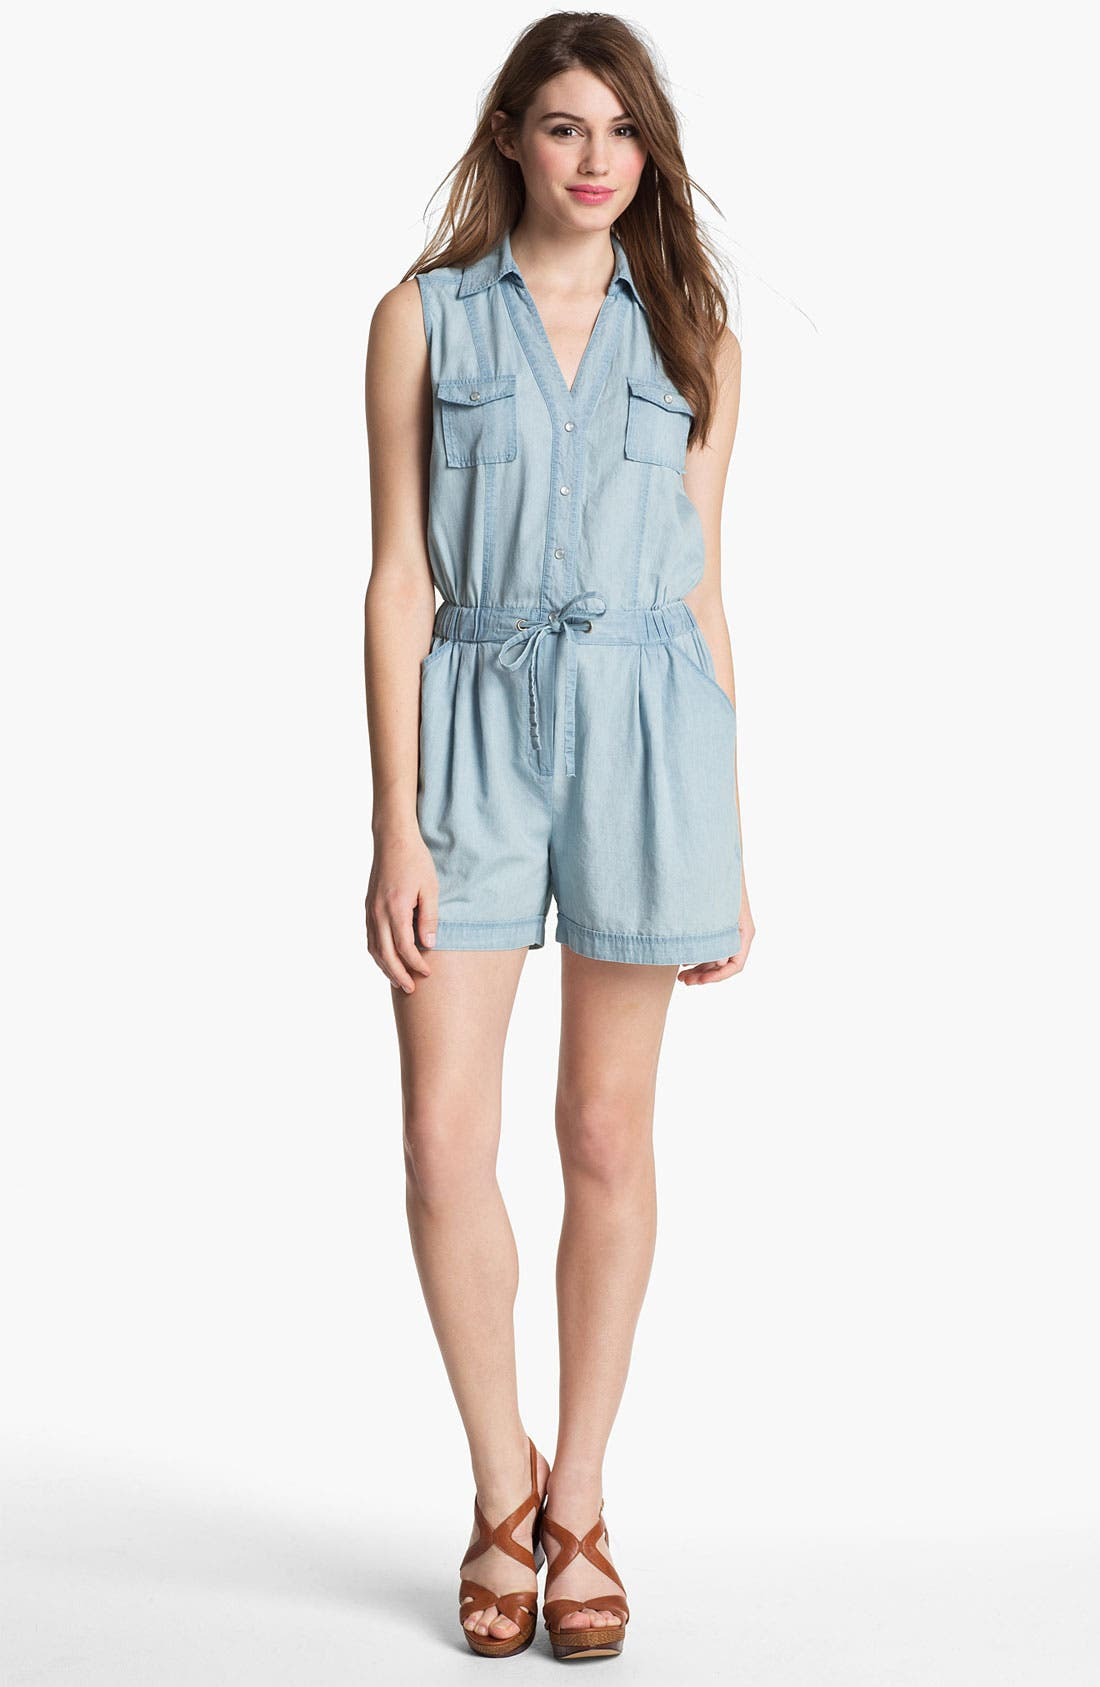 Alternate Image 1 Selected - Two by Vince Camuto Chambray Romper